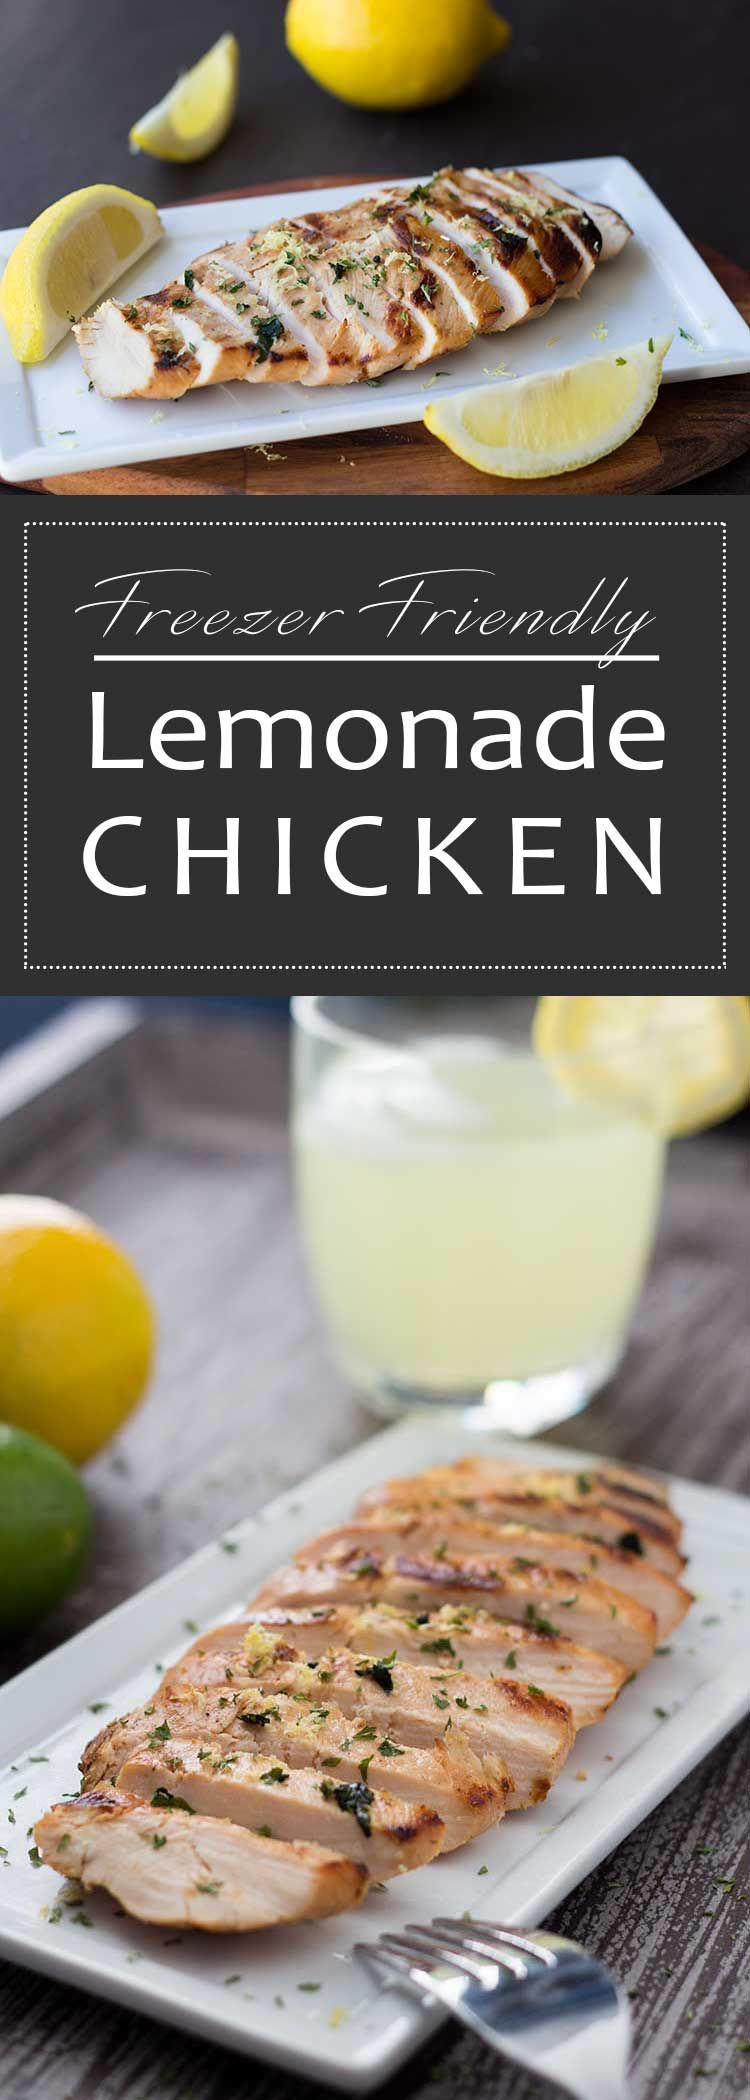 Lemonade Chicken - this easy freezer meal is a summer treat! It's juicy grilled chicken in a tangy lemonade marinade!